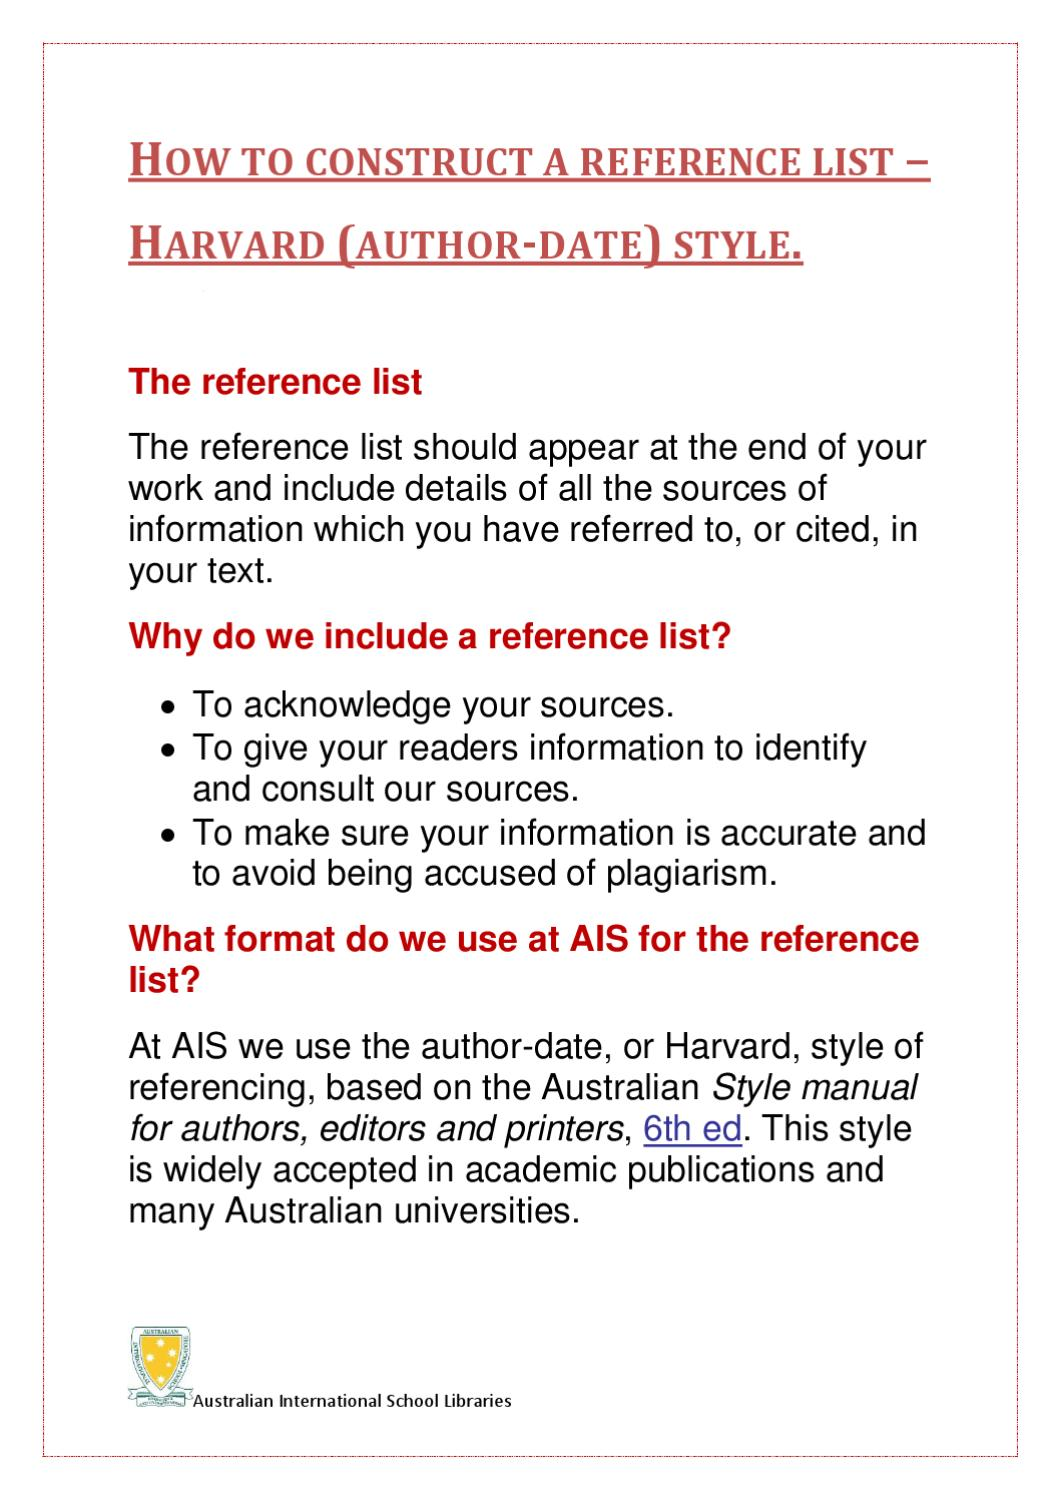 harvard style reference list example